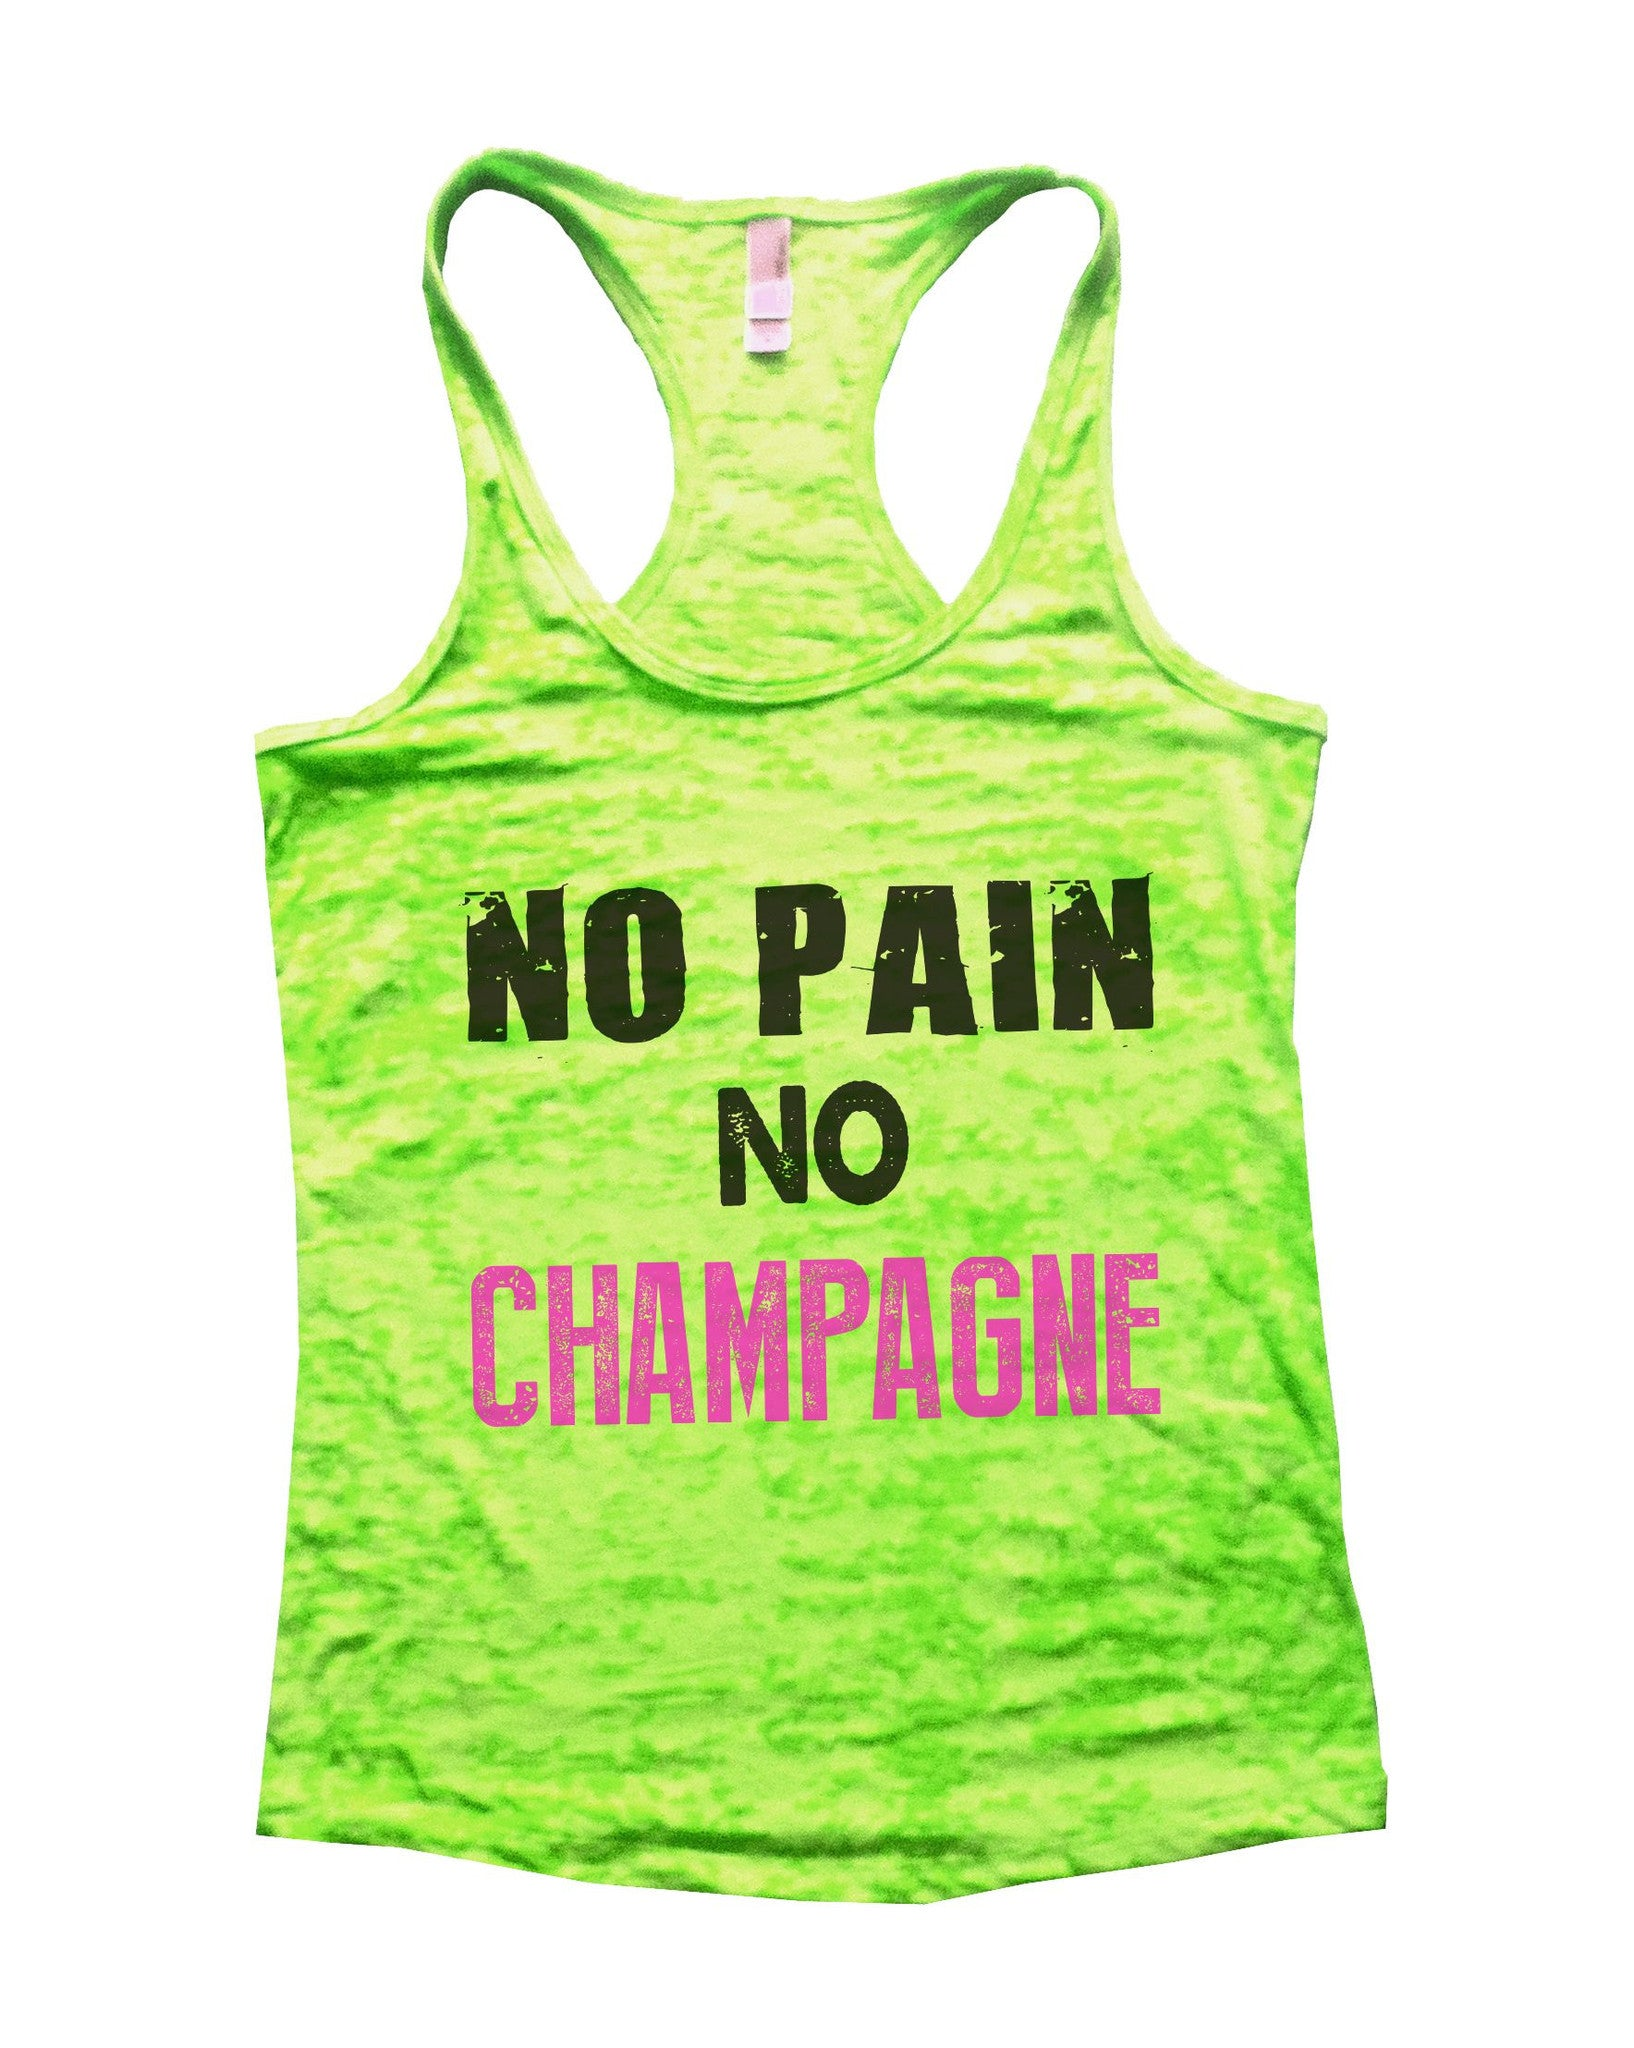 No Pain No Champagne Burnout Tank Top By BurnoutTankTops.com - 683 - Funny Shirts Tank Tops Burnouts and Triblends  - 3